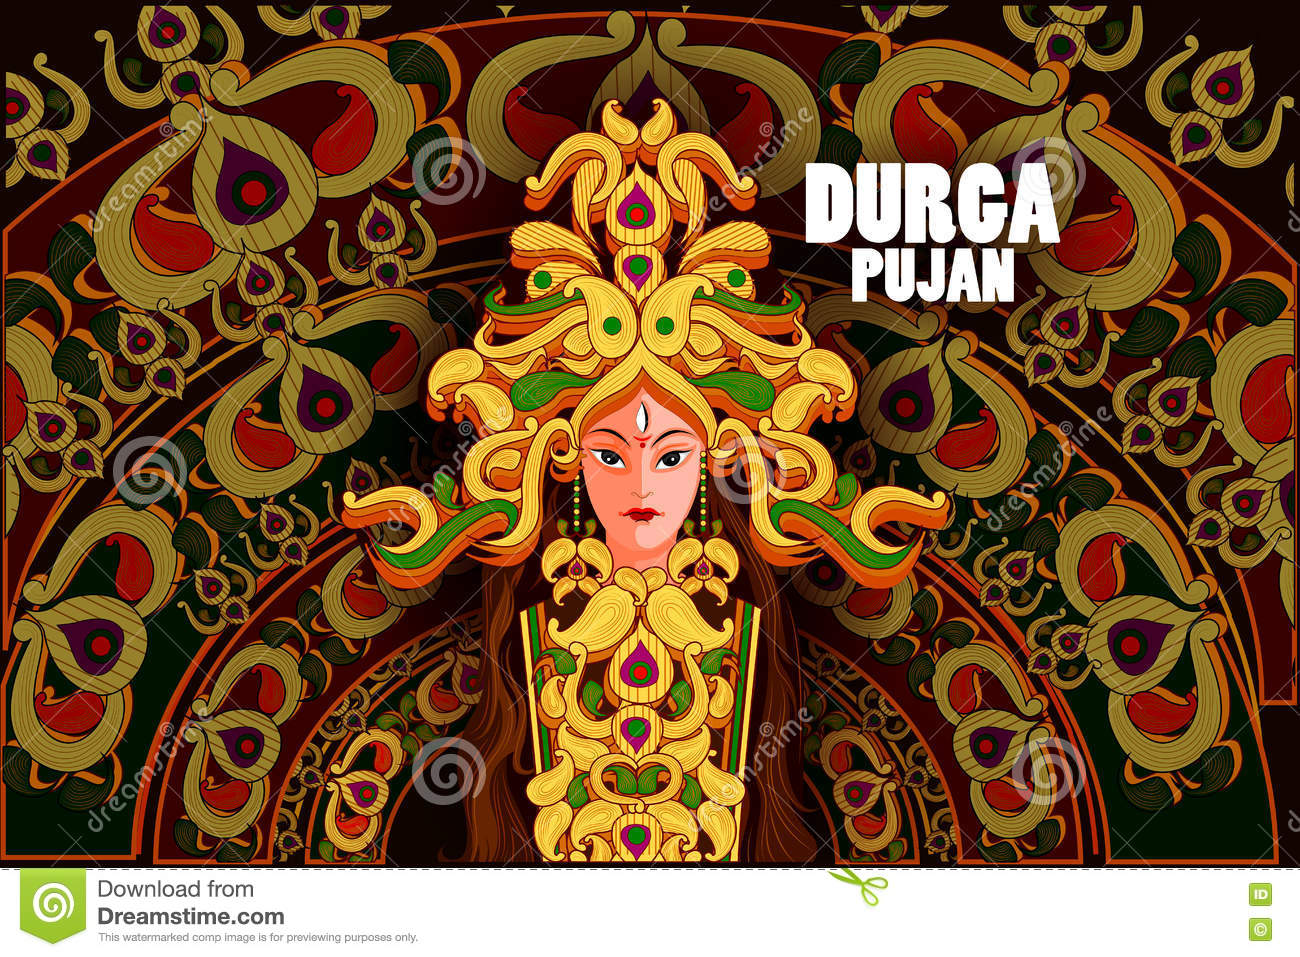 durga puja festival holidays Download royalty-free happy durga puja festival india holiday background  vector illustration stock vector 167116704 from depositphotos.